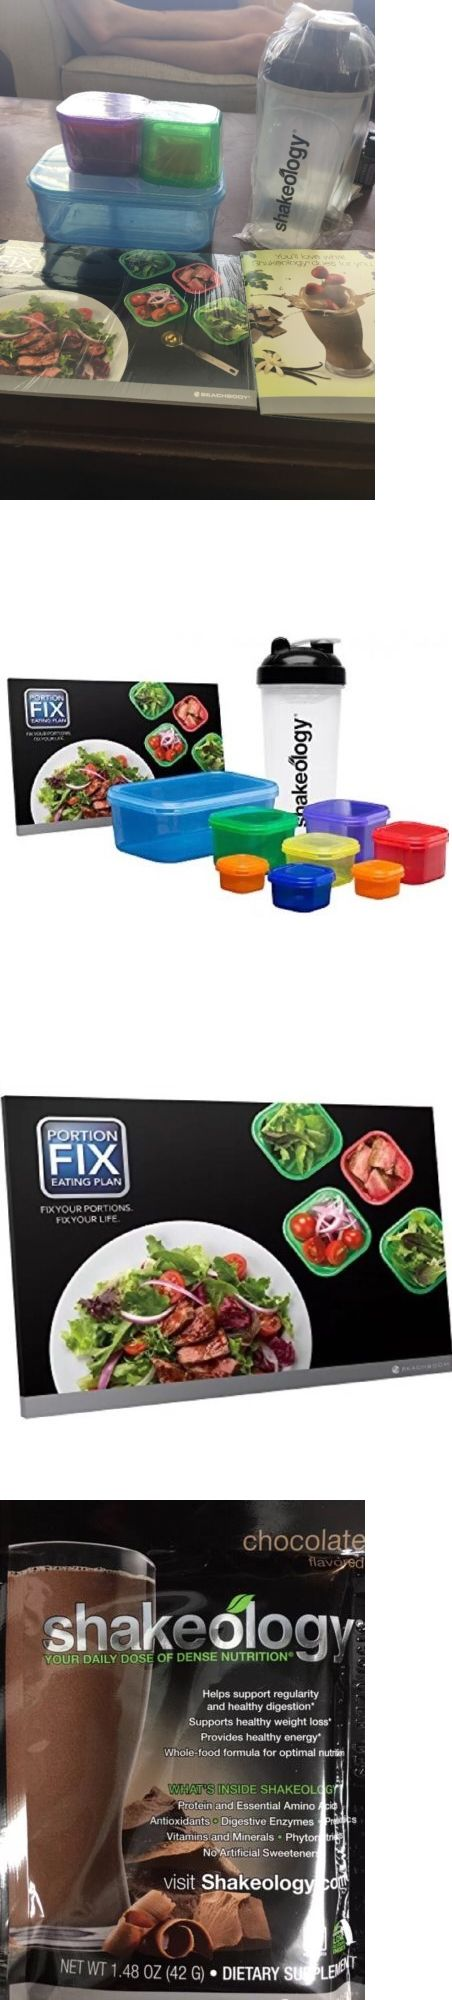 Fitness DVDs 109130: Beachbody Portion Fix Kit Portion Control, Eating Plan, Shaker And Free Shakeology -> BUY IT NOW ONLY: $30.6 on eBay!